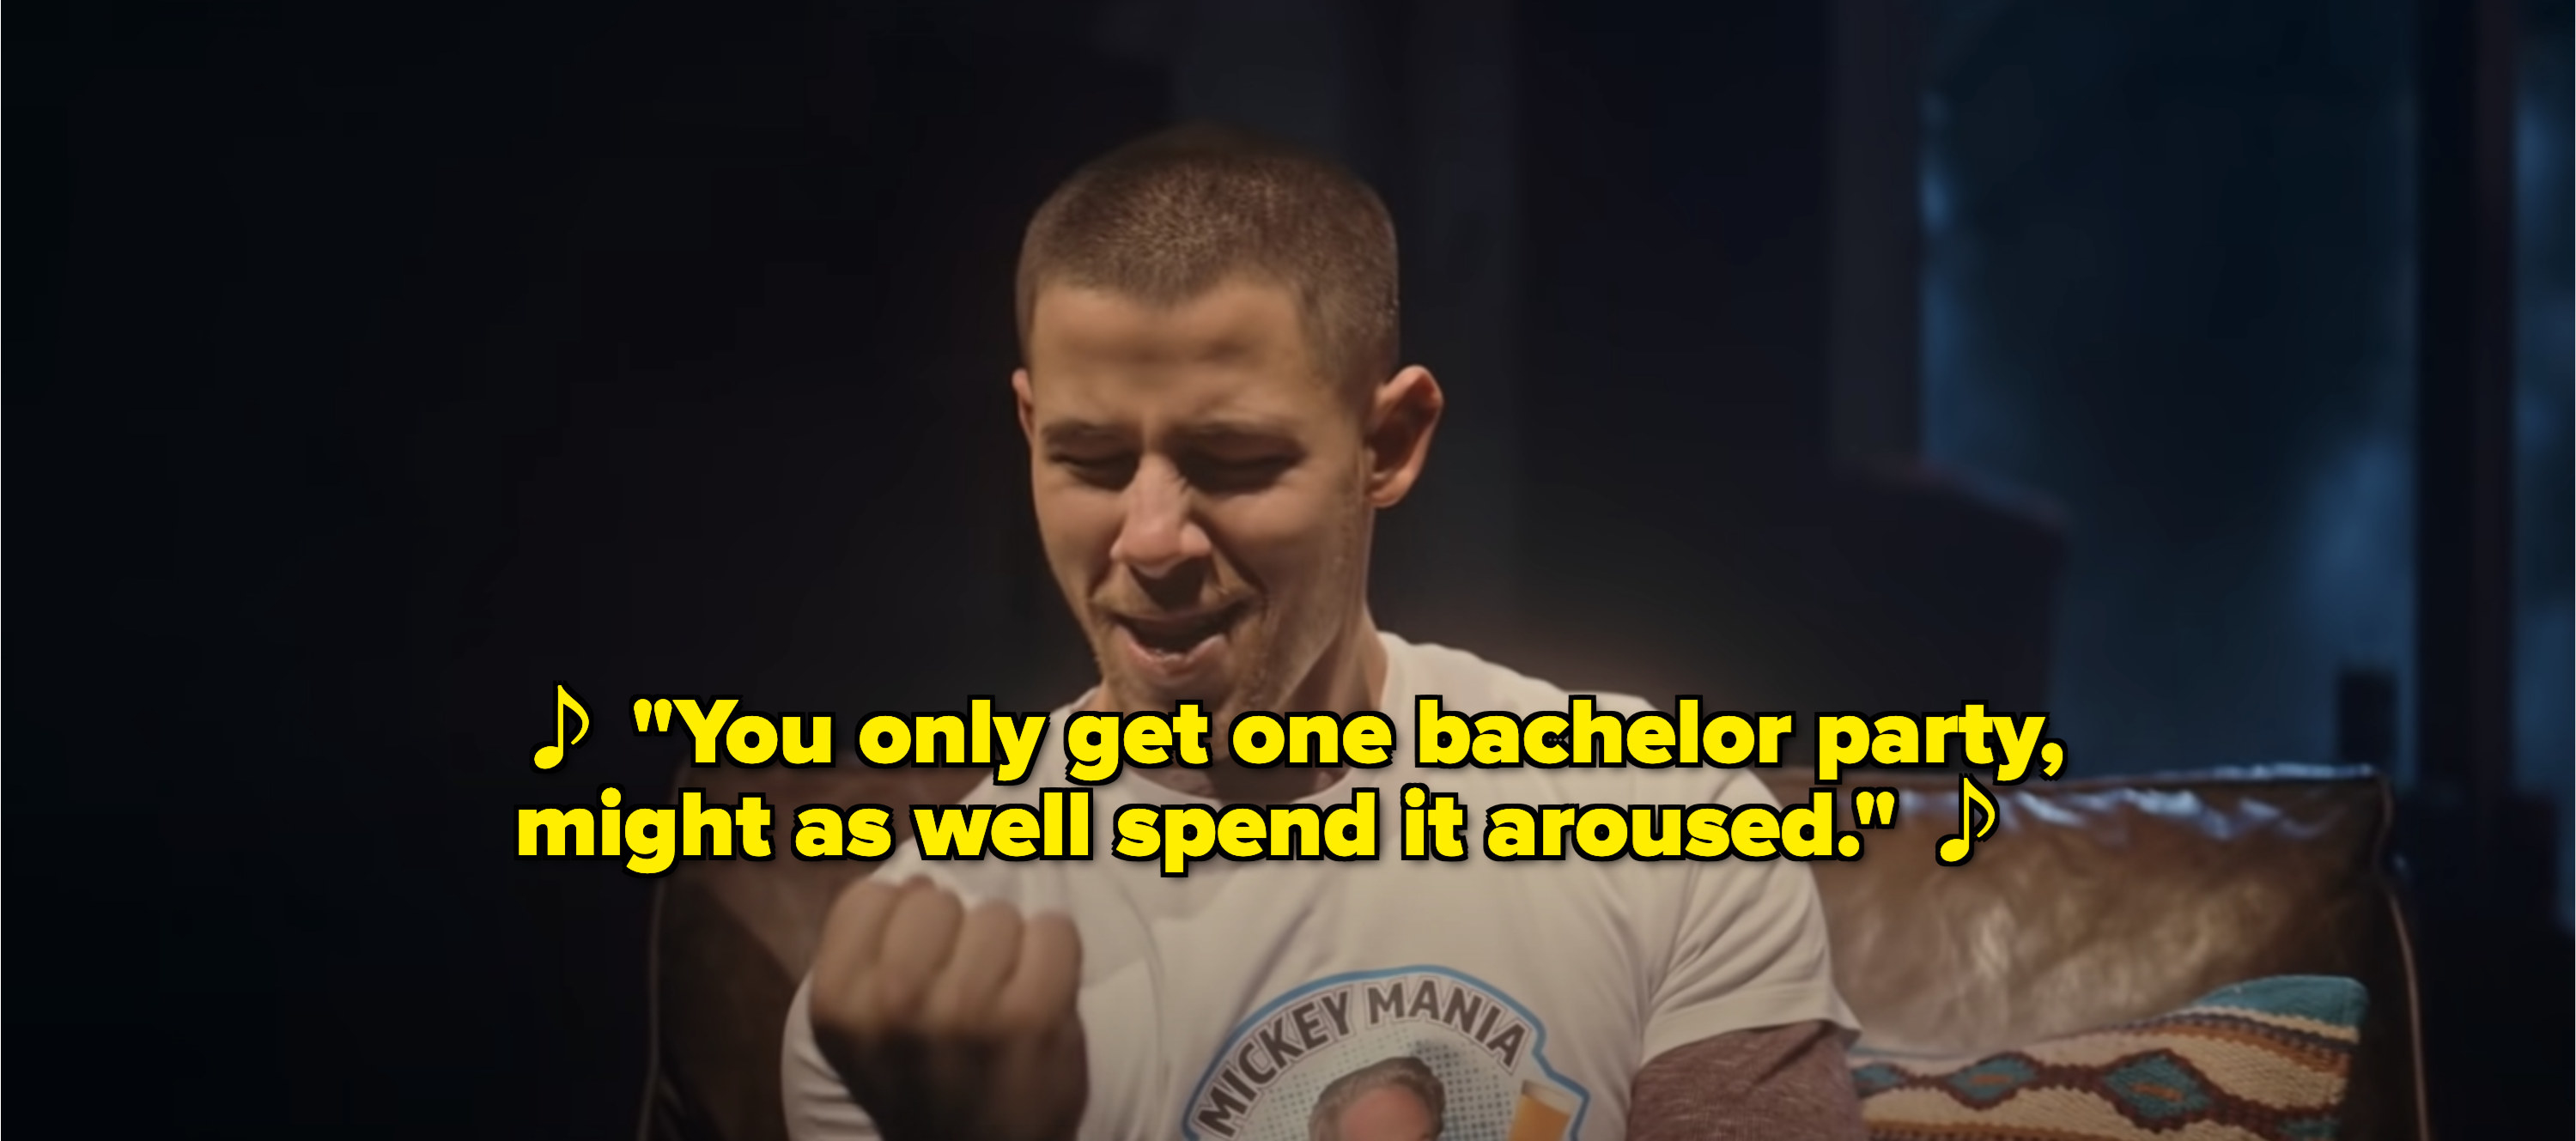 """Nick sings, """"You only get one bachelor party, might as well spend it aroused"""""""